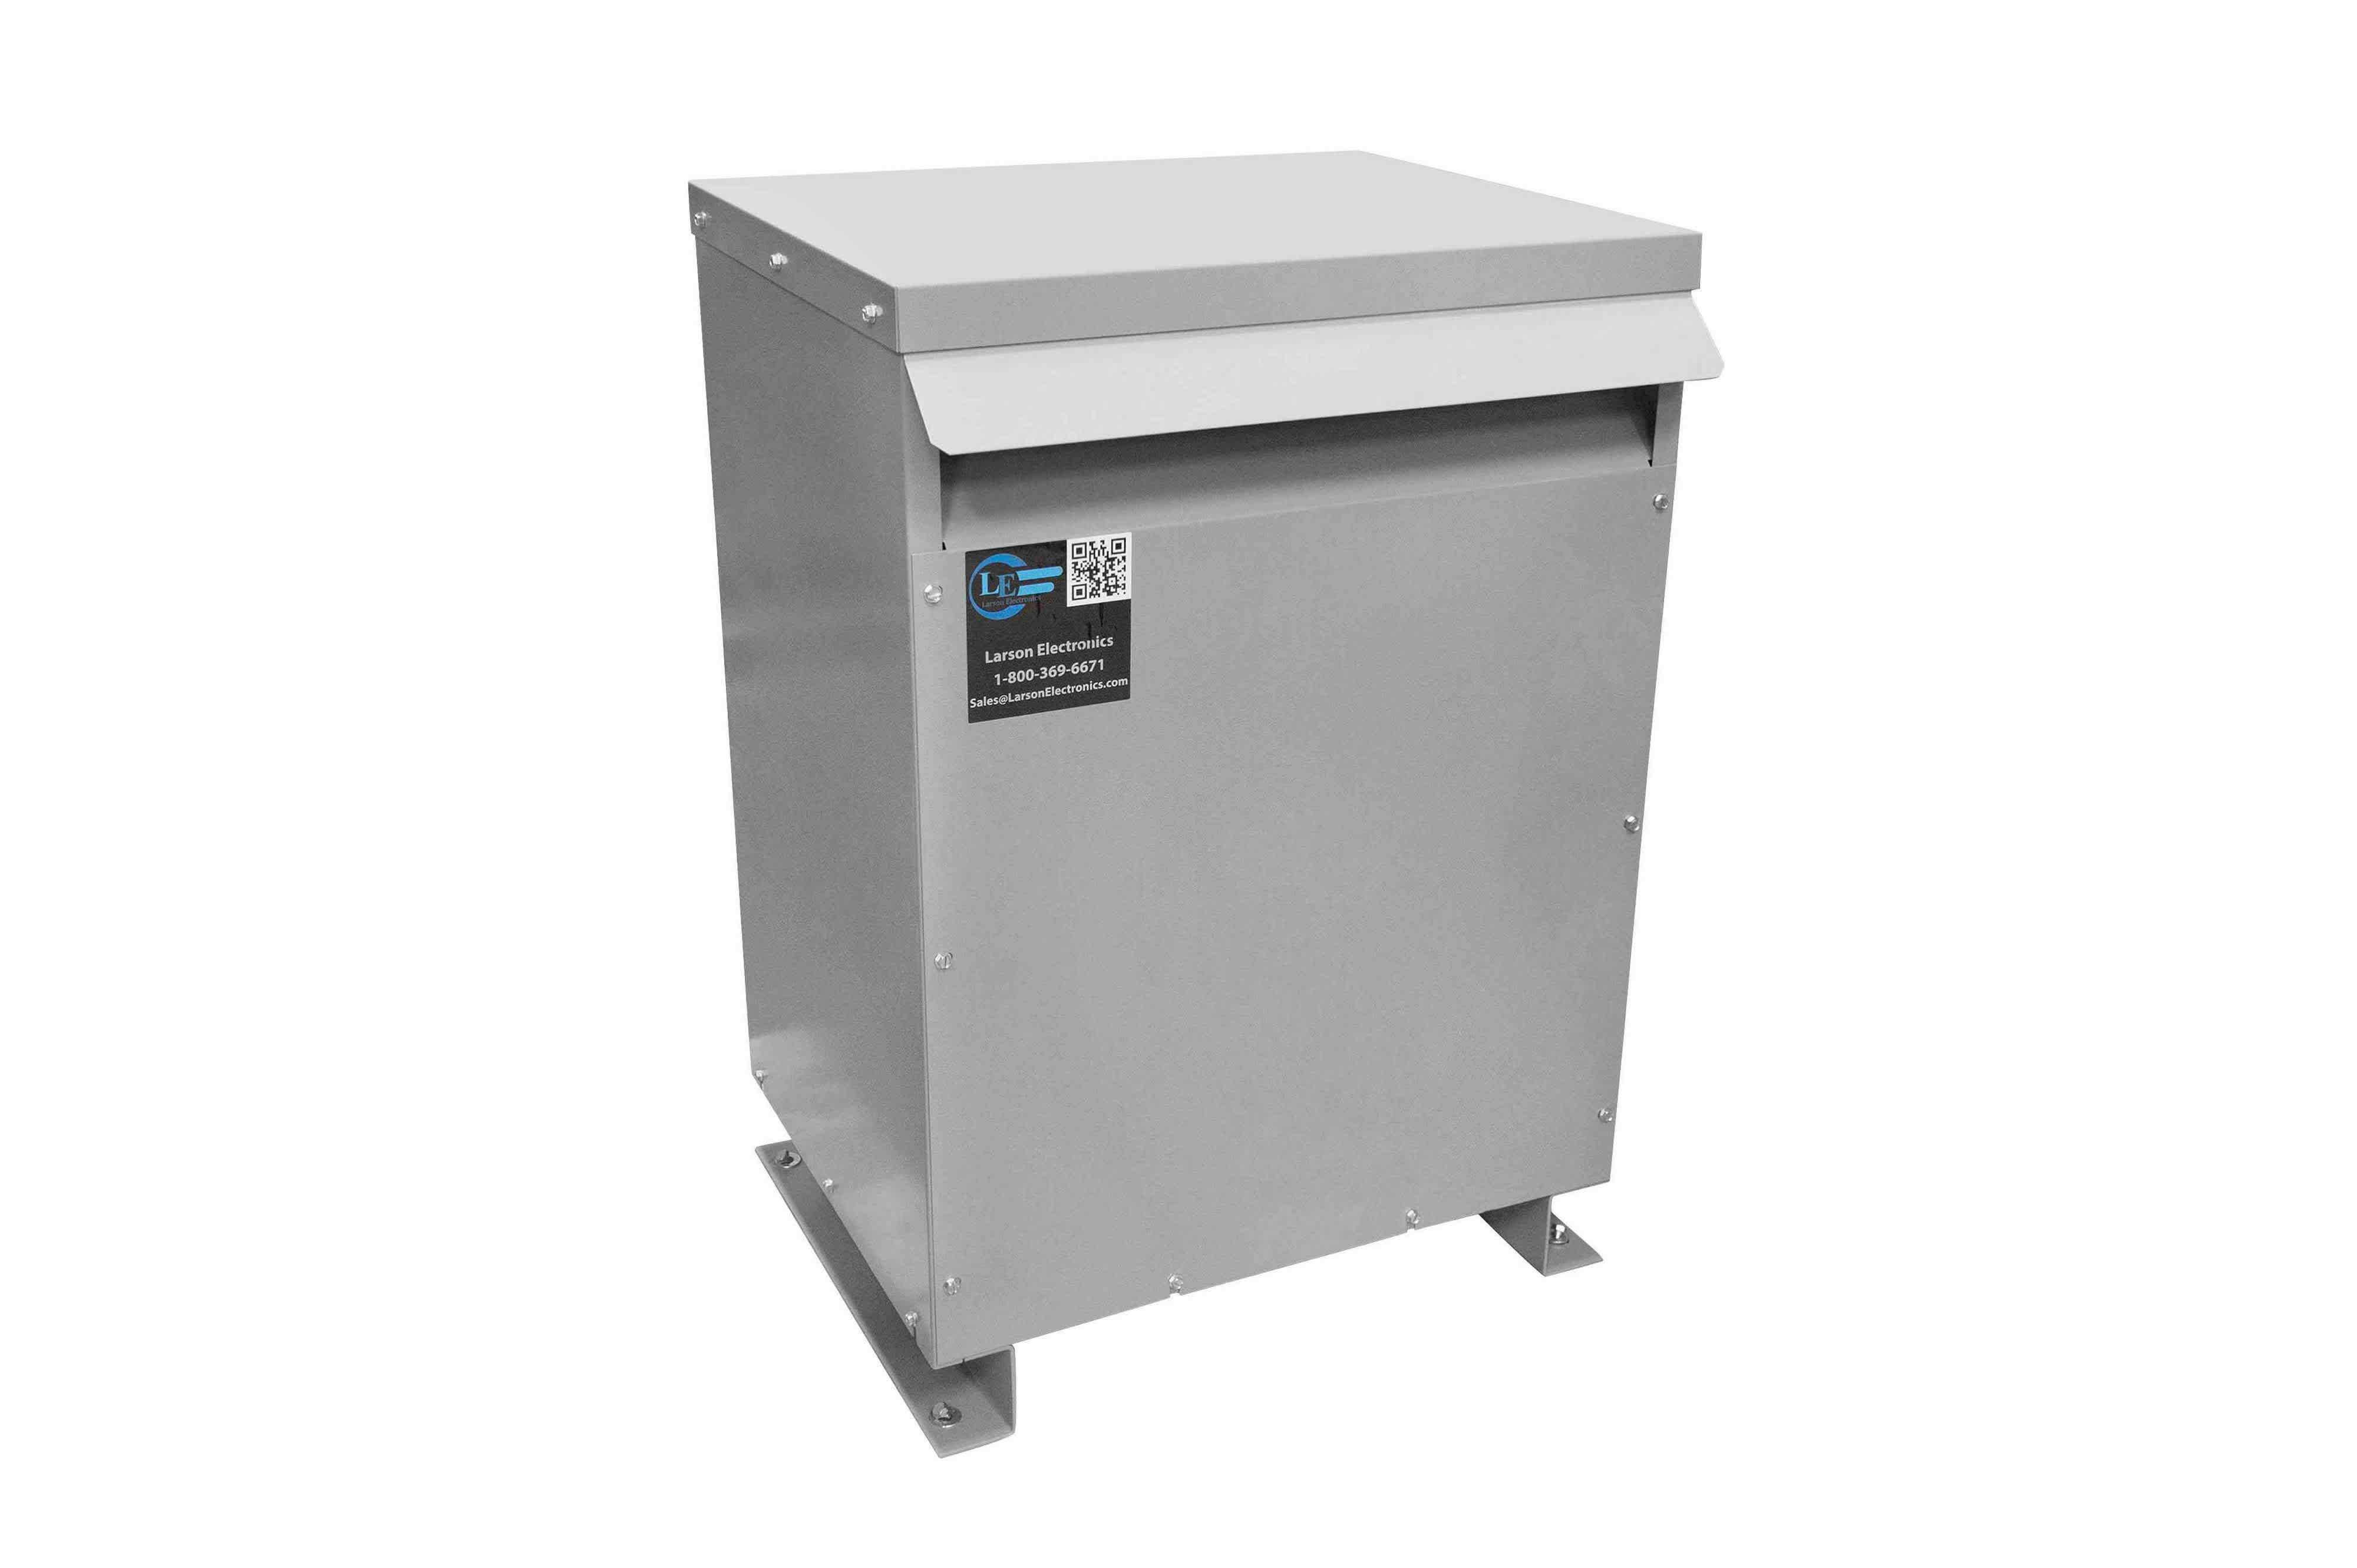 52.5 kVA 3PH Isolation Transformer, 575V Delta Primary, 415V Delta Secondary, N3R, Ventilated, 60 Hz